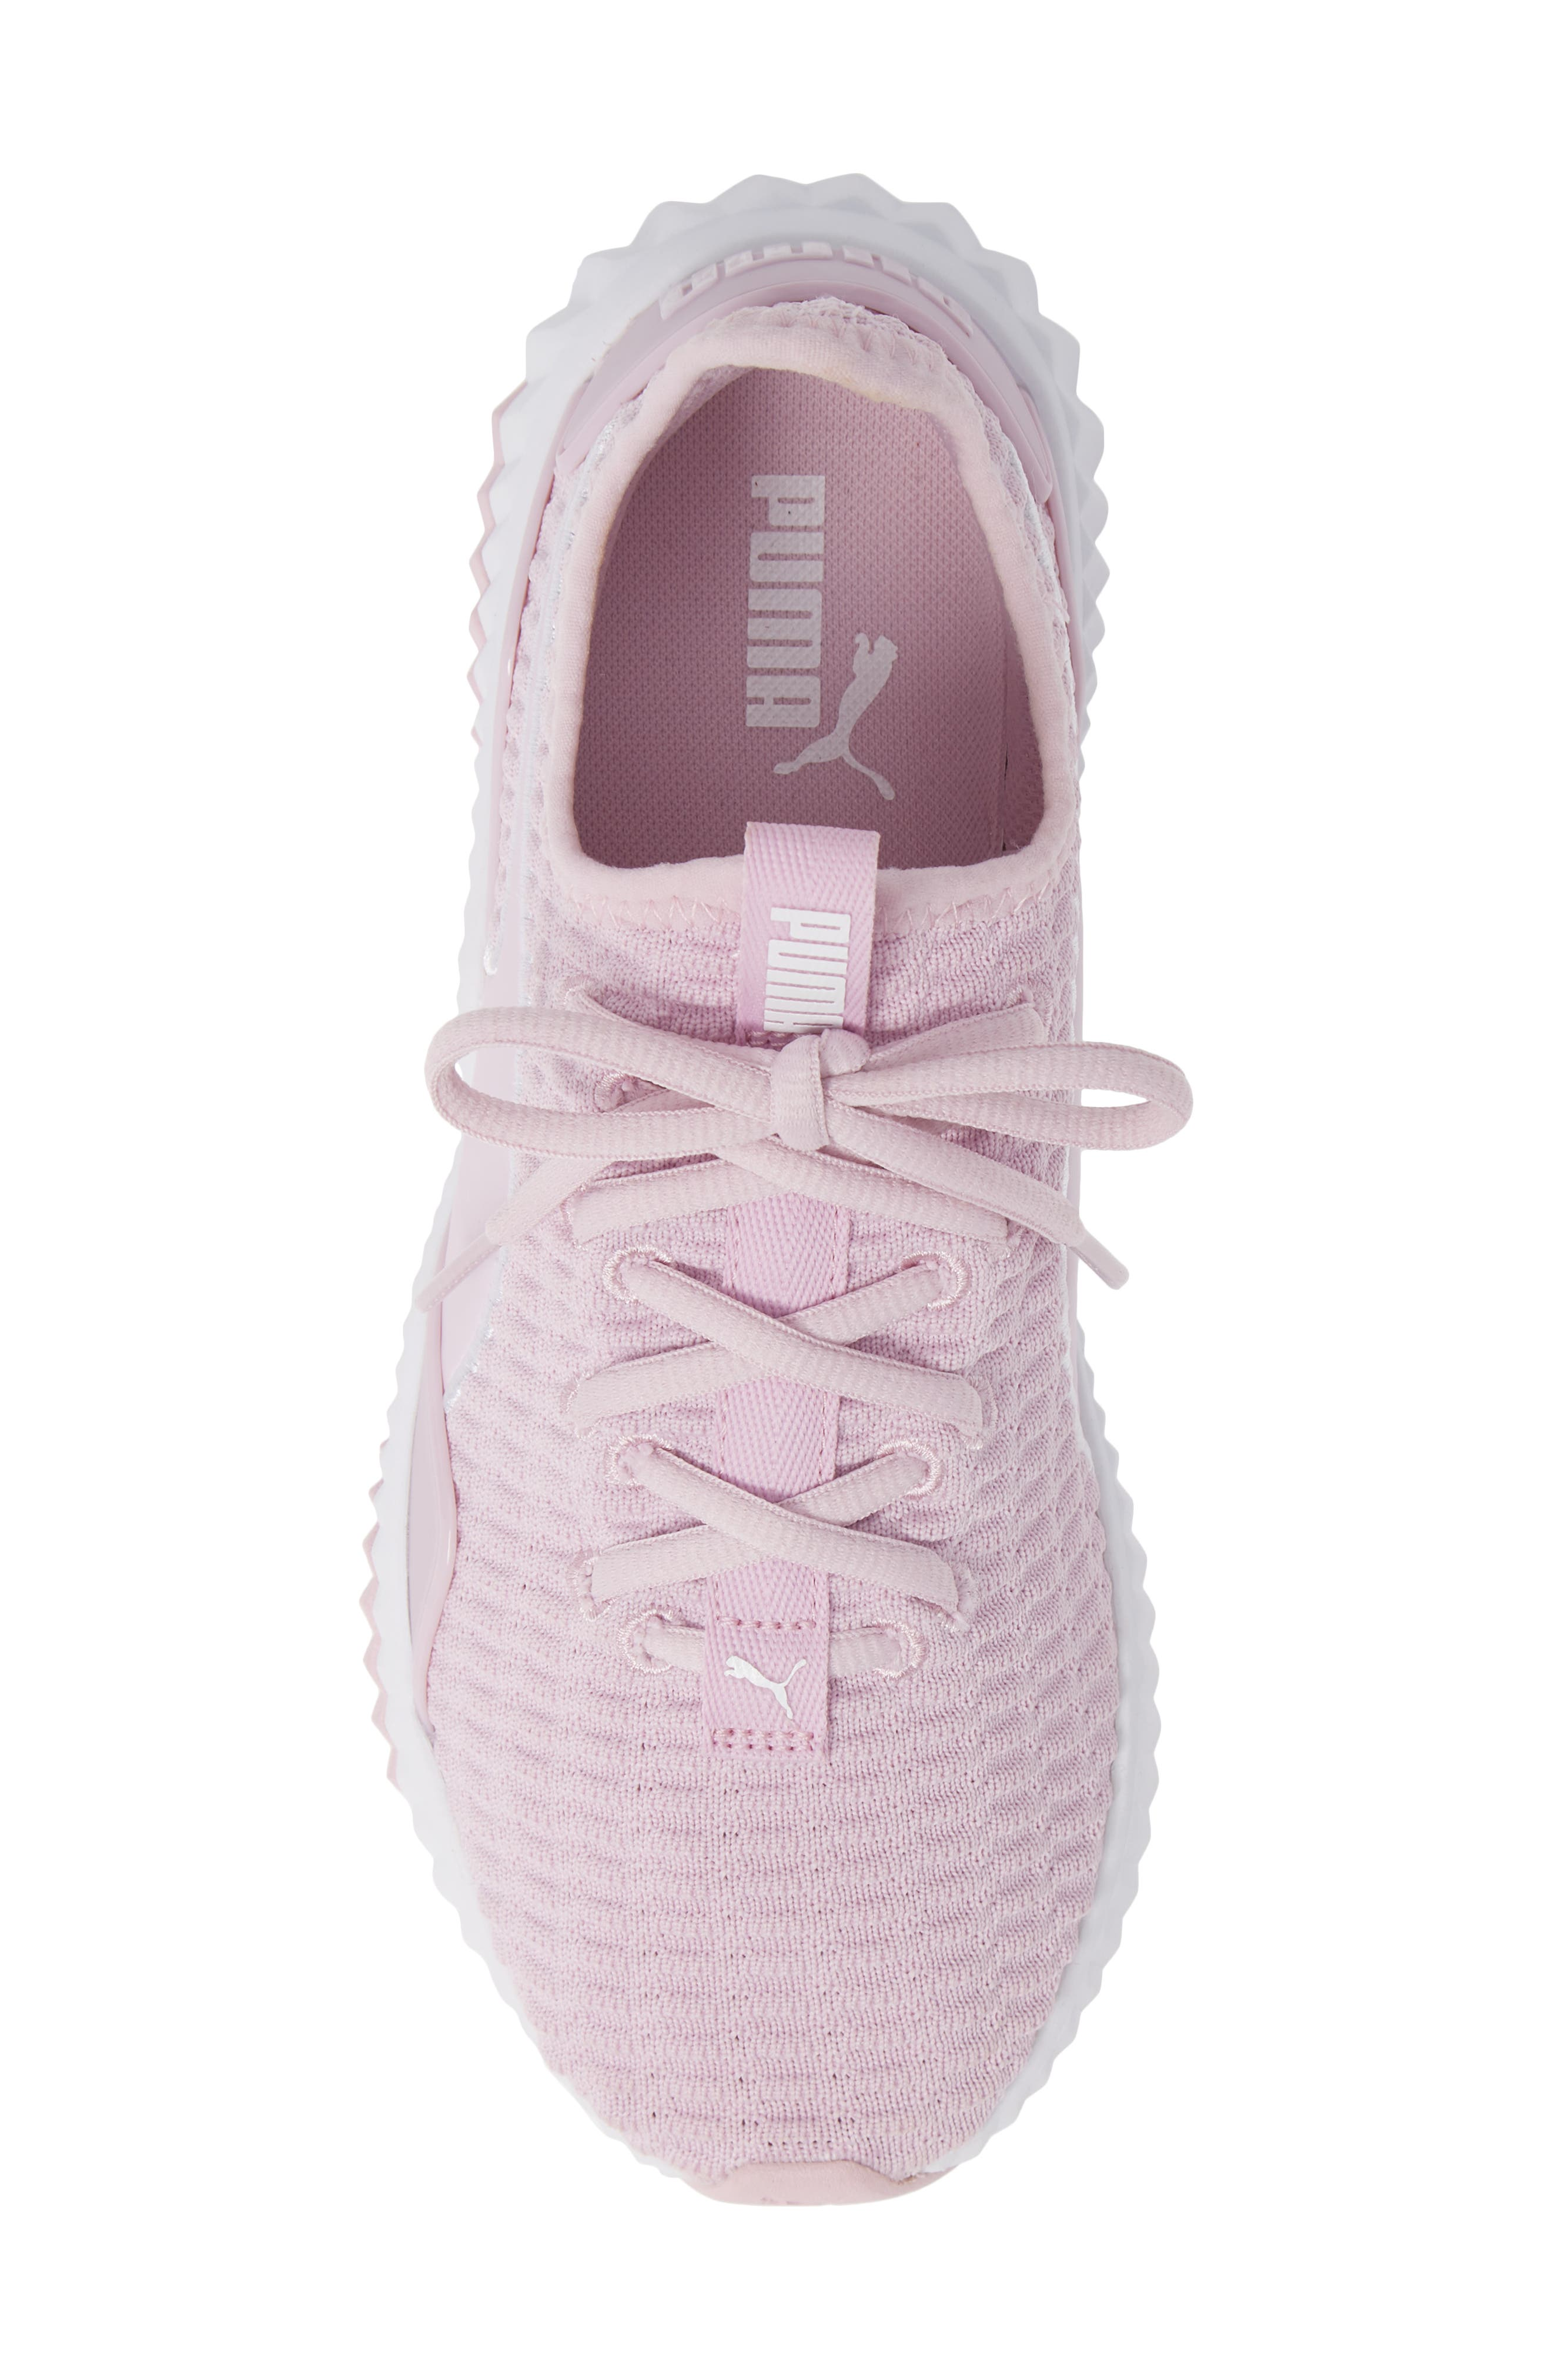 Defy Sneaker,                             Alternate thumbnail 5, color,                             WINSOME ORCHID/ PUMA WHITE